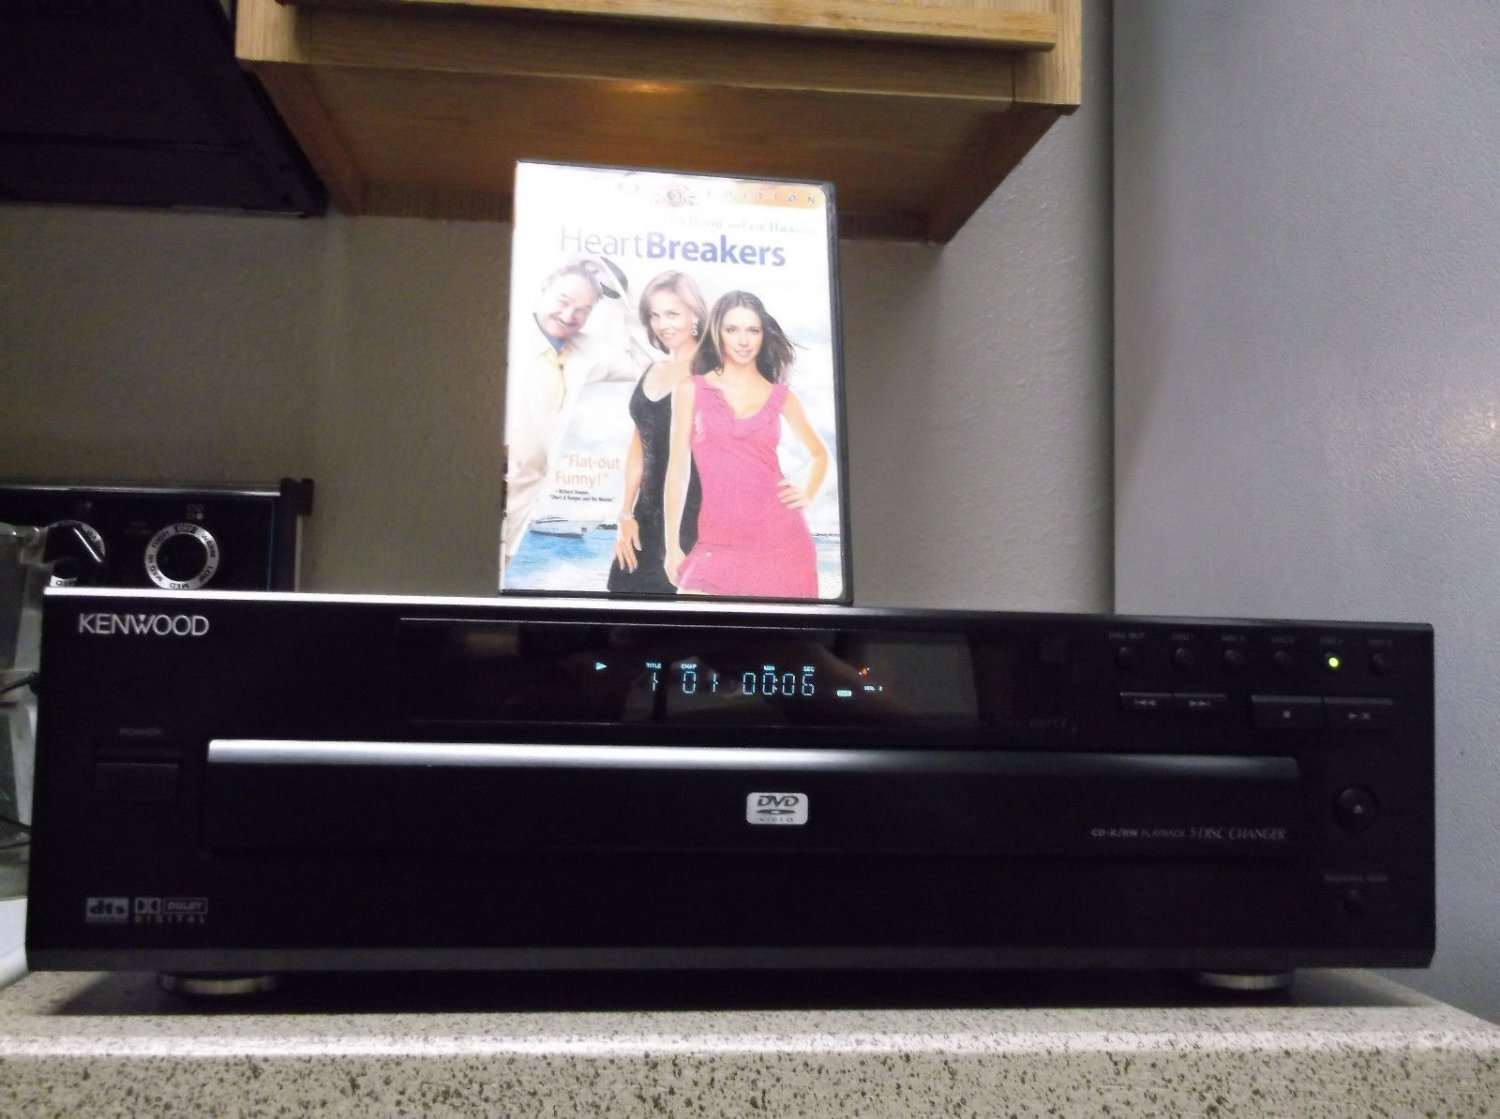 Refurbihsed KenWood DV-605 5 CD DVD Player With Progressive Scan & DVD 1 Movie